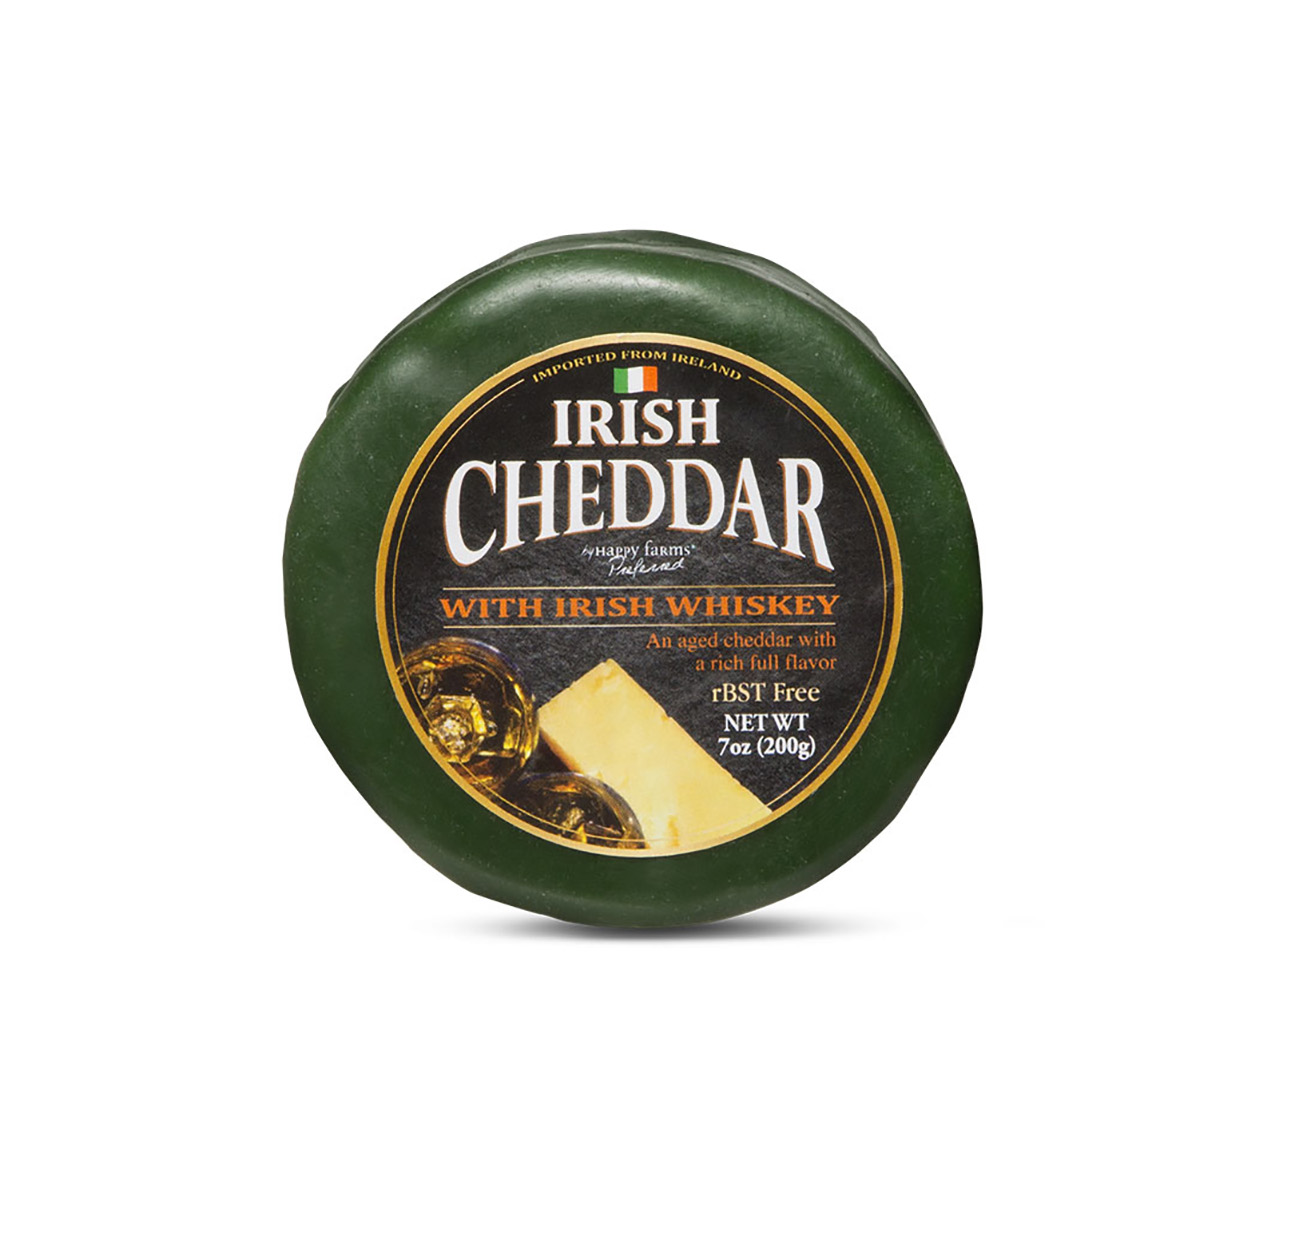 Round package of Irish cheddar made with whiskey